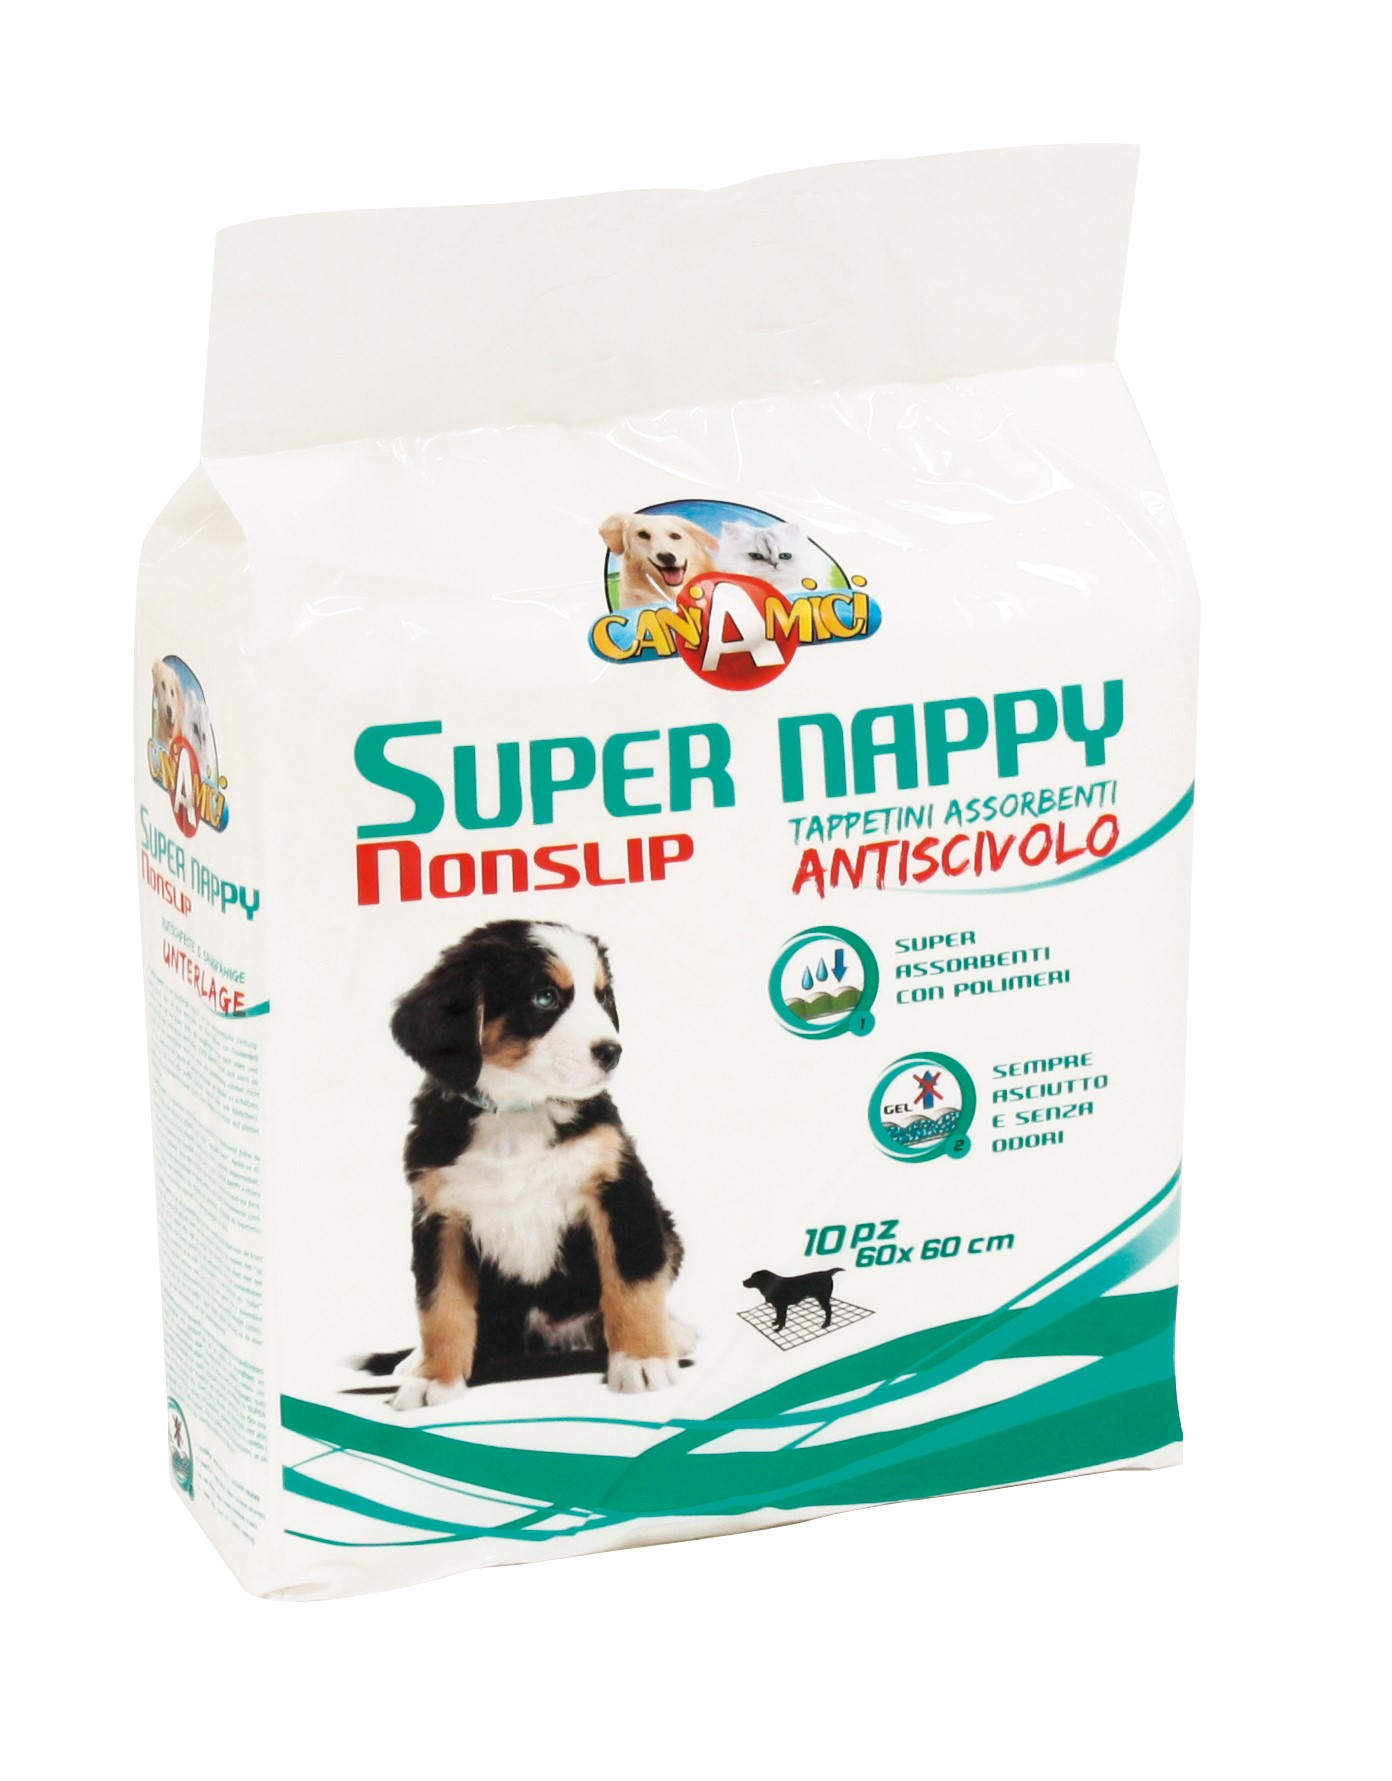 Croci Super Nappy Nonslip антискользящие пеленки для собак, 10 шт